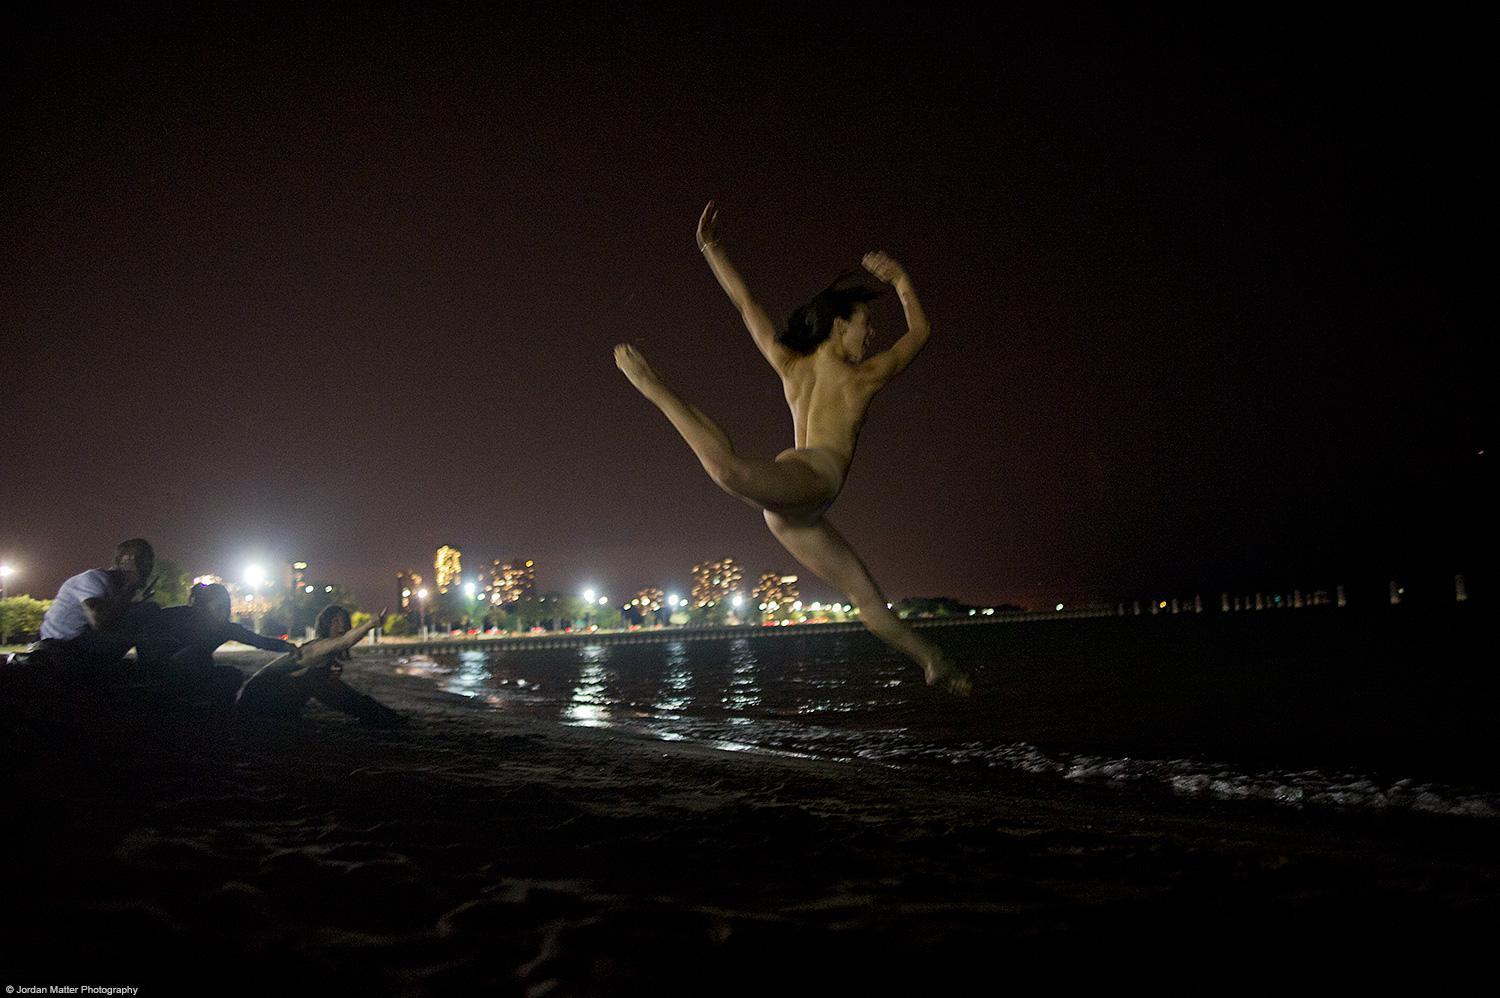 Dancers-Among-Us-skinnydipping-in-Chicago-Marissa-Horton